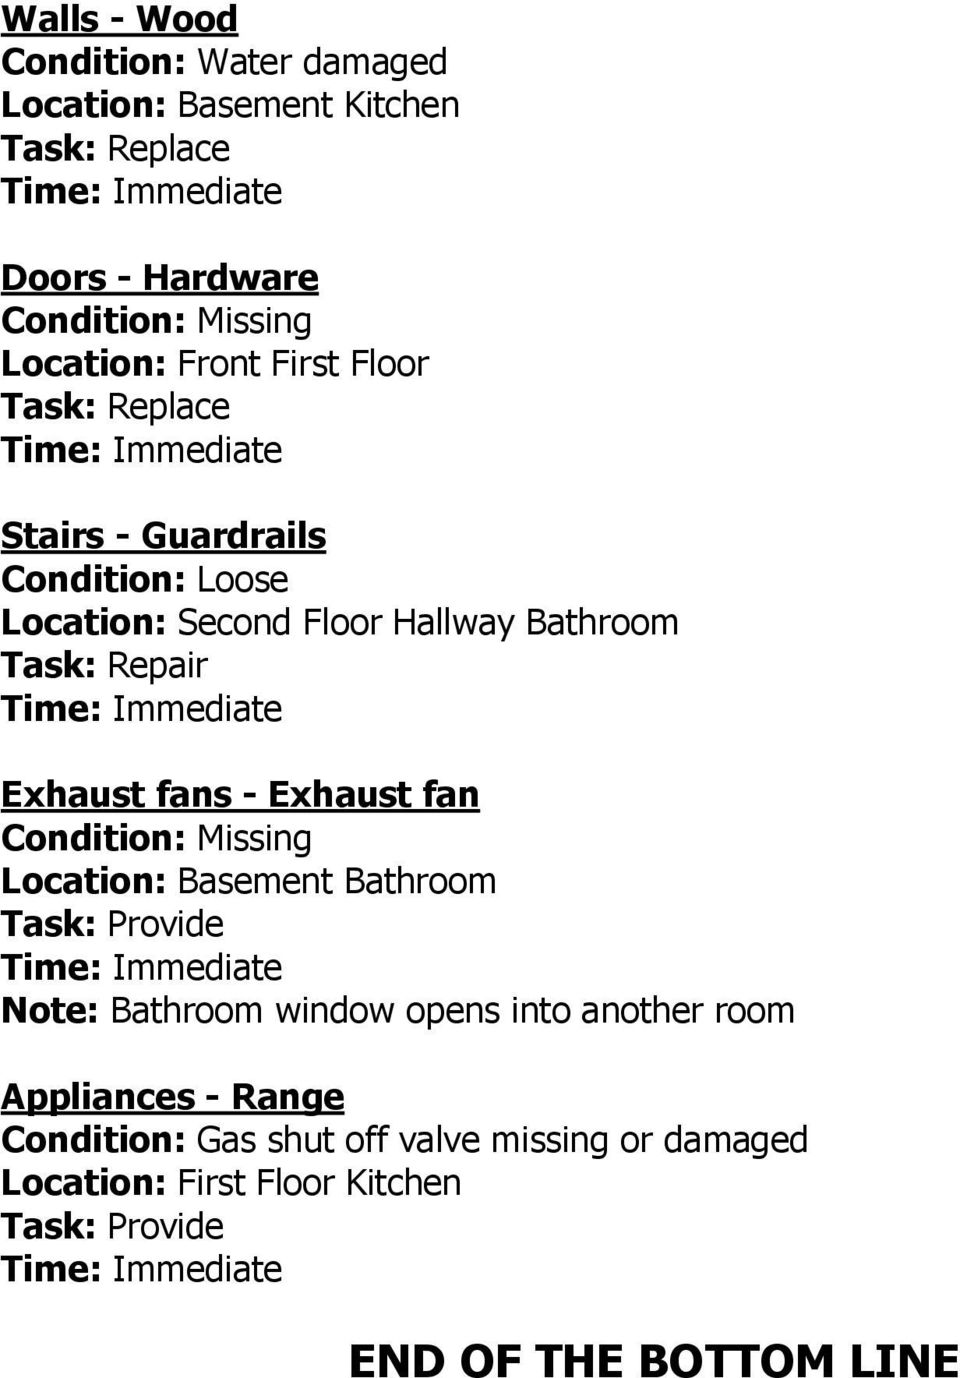 Hallway Bathroom Exhaust fans - Exhaust fan Note: Bathroom window opens into another